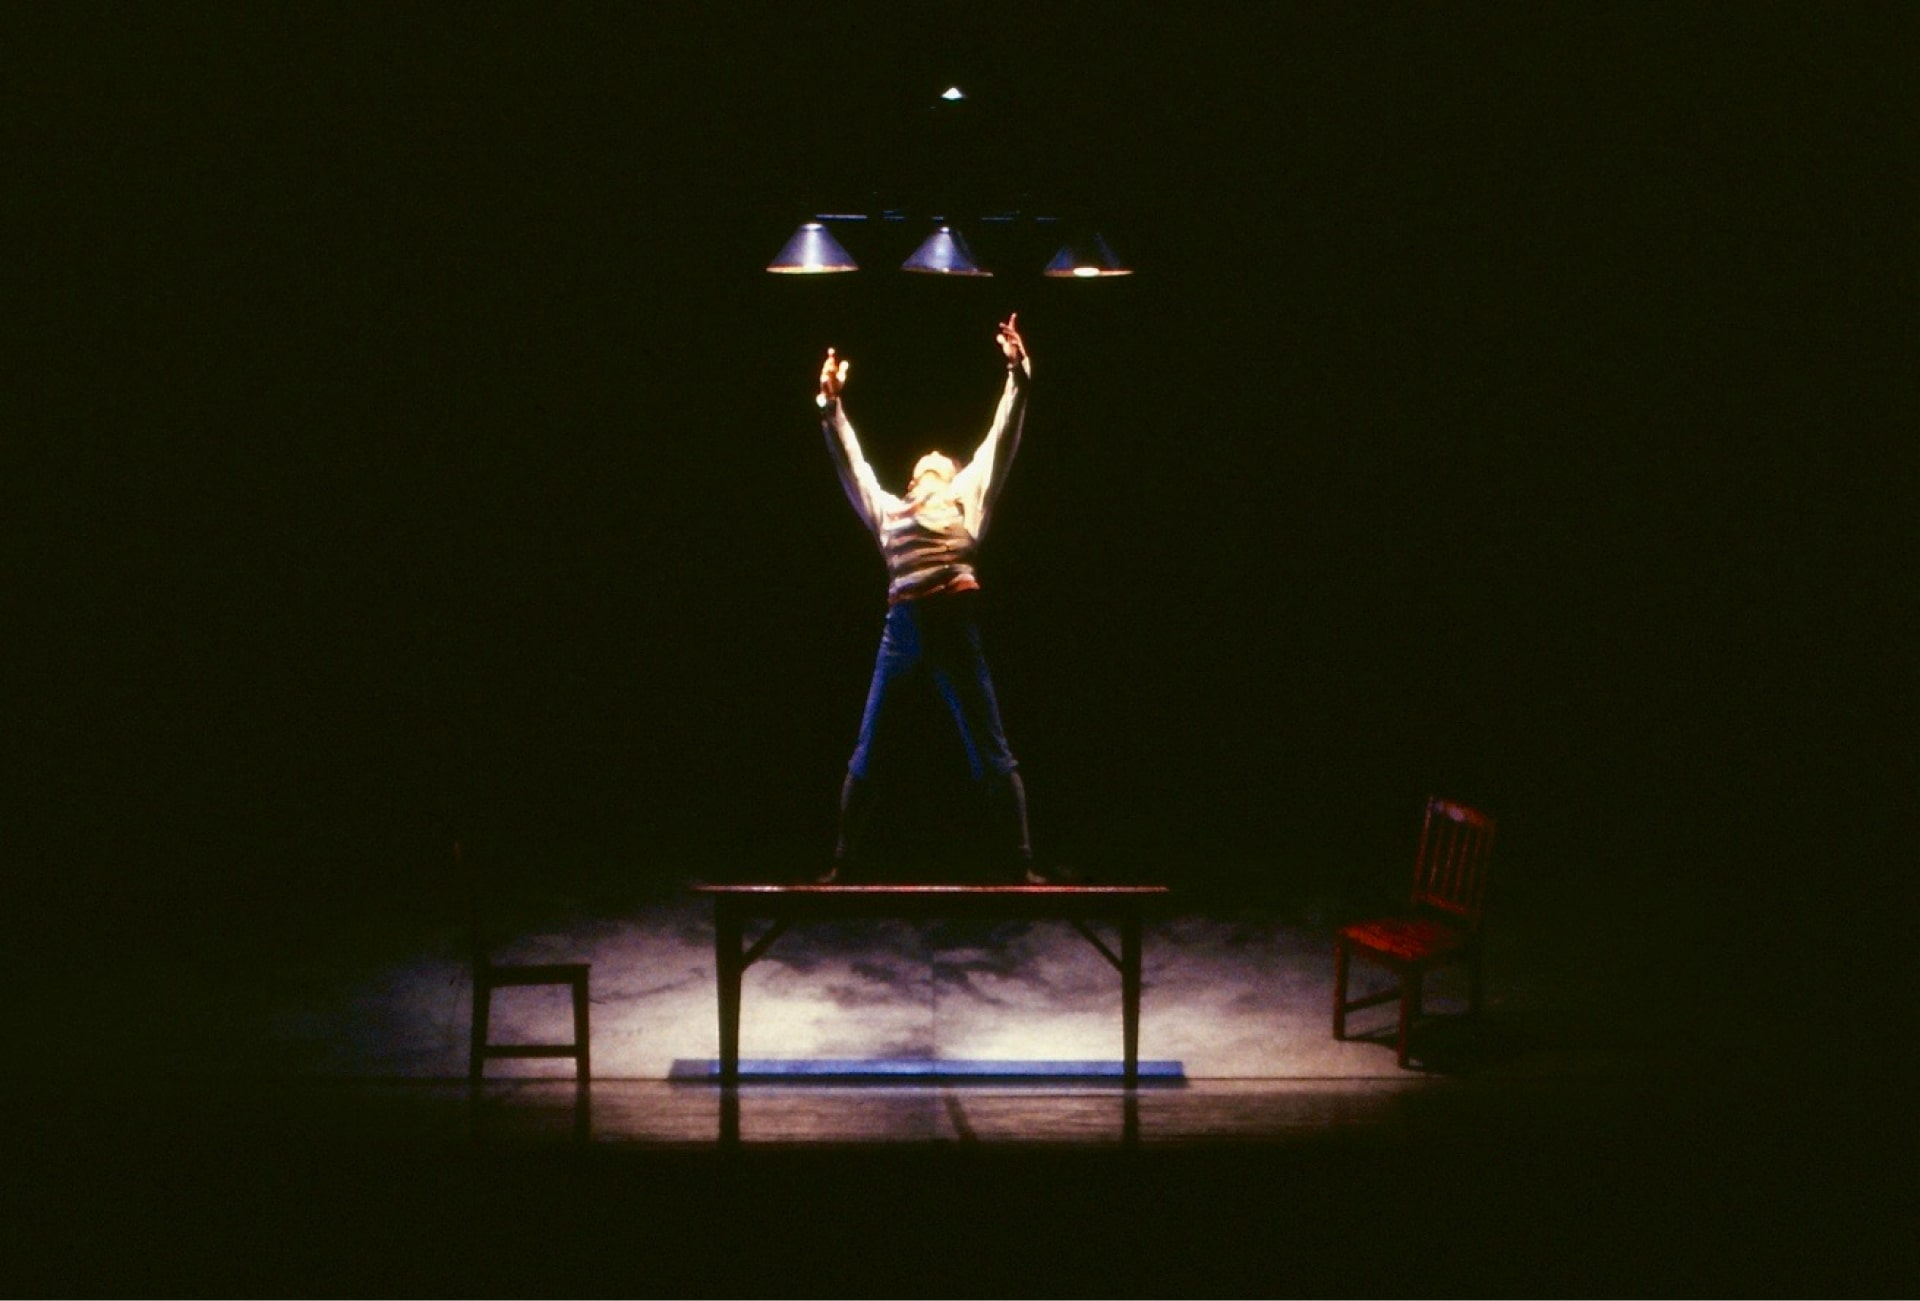 Dancer in schoolboy attire stands on table extending arms to overhead lamps, in front of chair on raked platform.